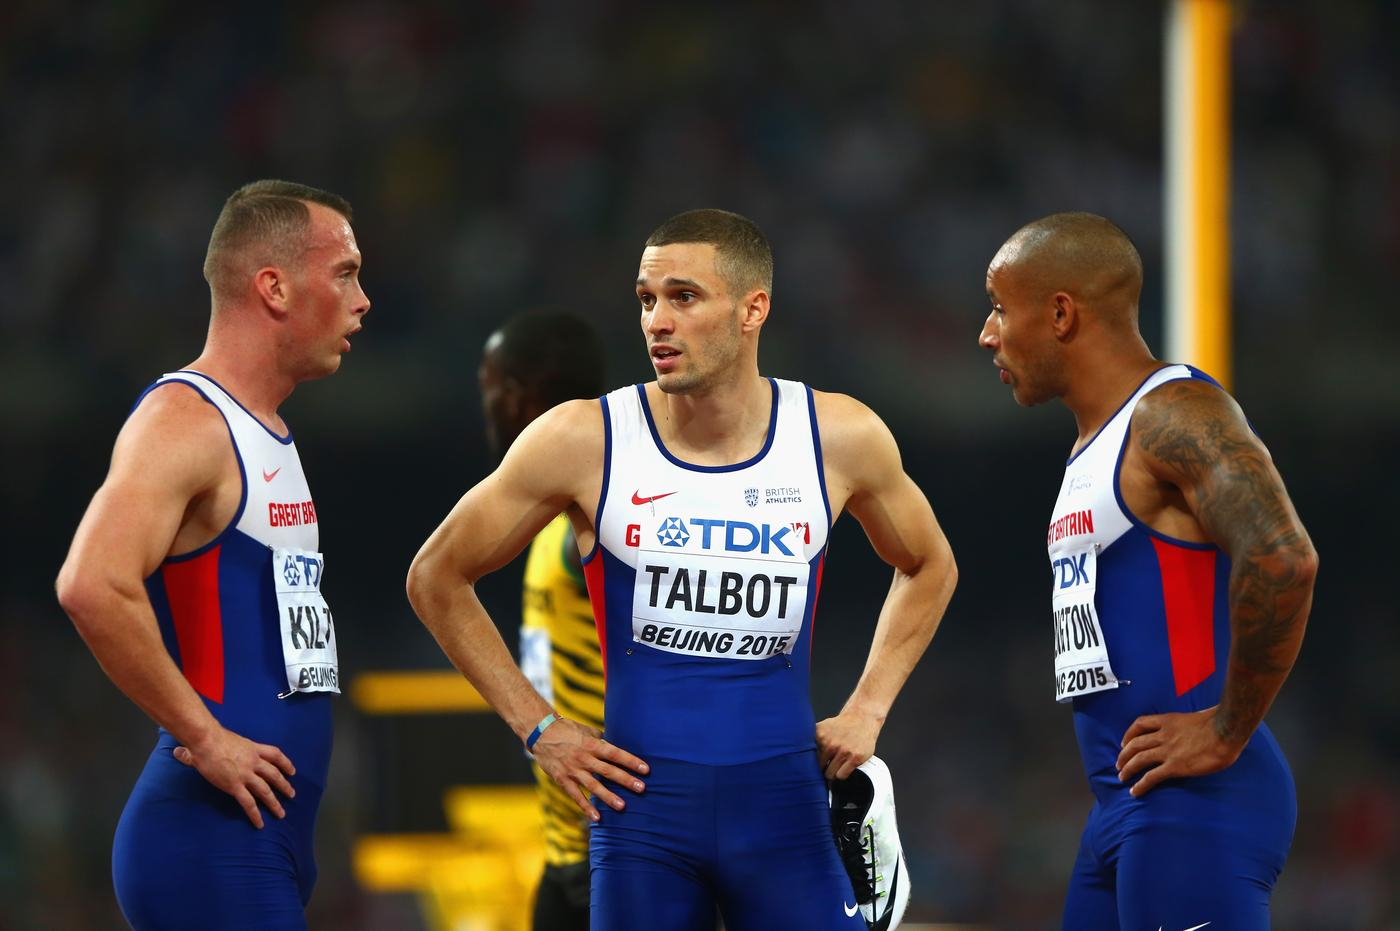 Great Britain 4x100m relay team turn on each other after World Athletics Championships failure